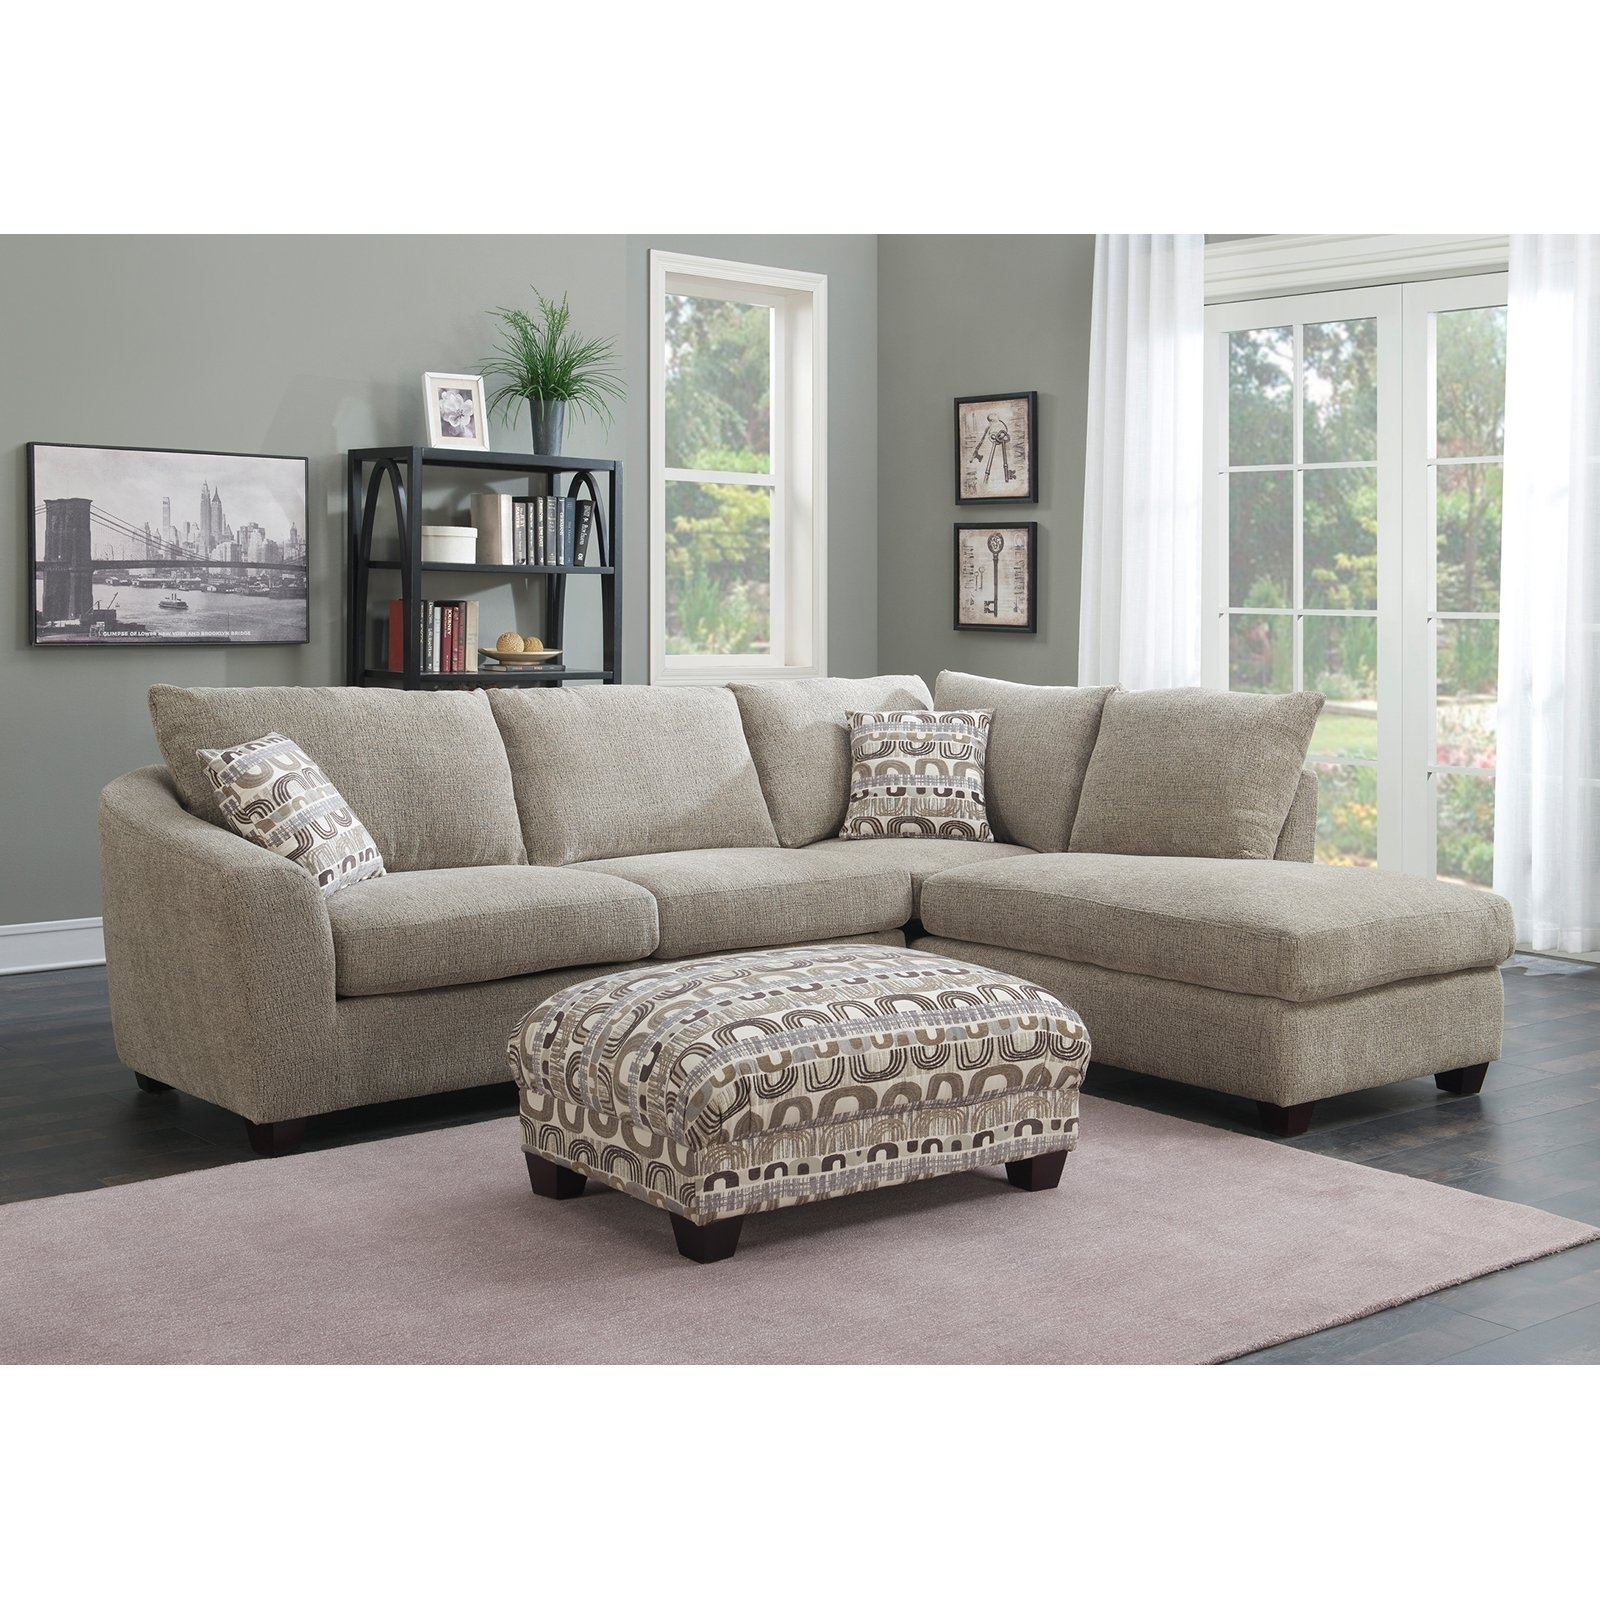 2 Piece Sectional With Chaise - Tidex inside Arrowmask 2 Piece Sectionals With Raf Chaise (Image 1 of 30)